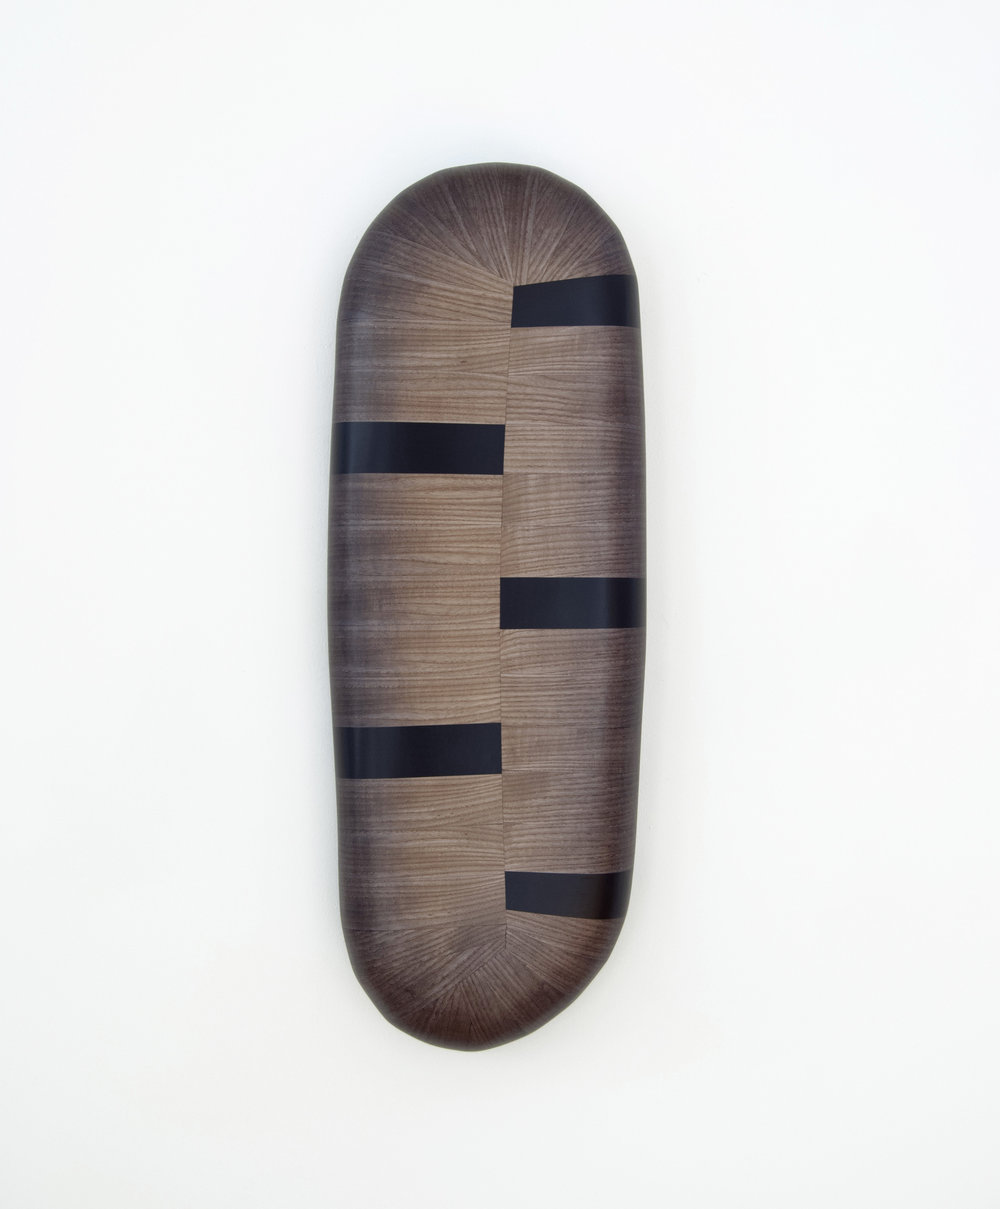 Bartlett_Septo_2018_30x10x4inches_wood_stain_paint_1.jpg